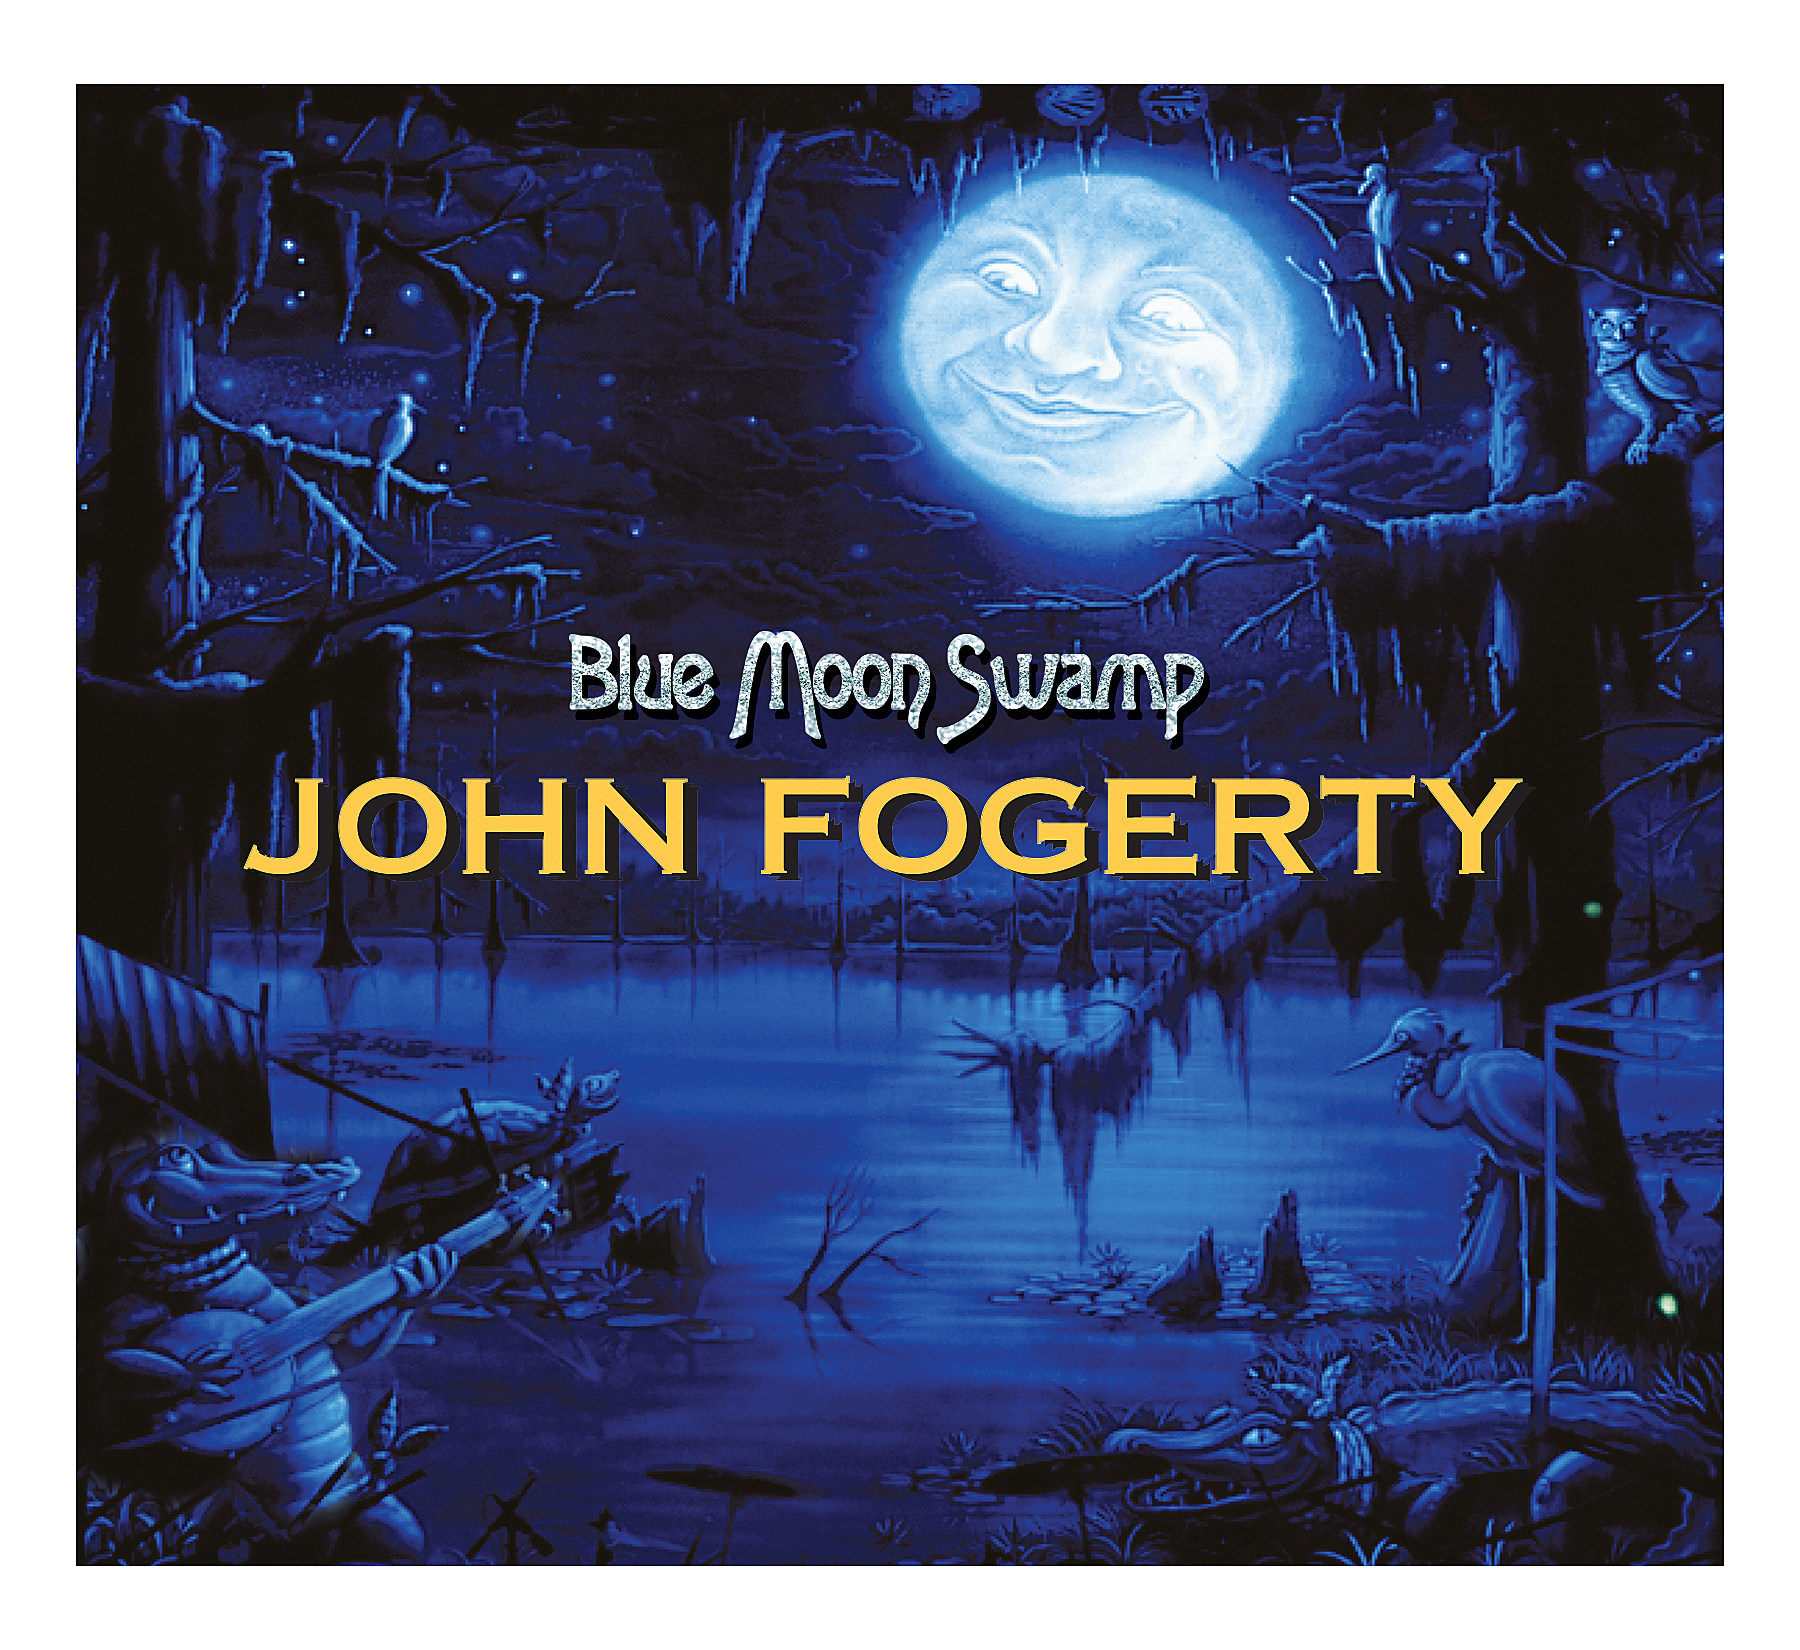 John Fogerty To Reissue Blue Moon Swamp New Album